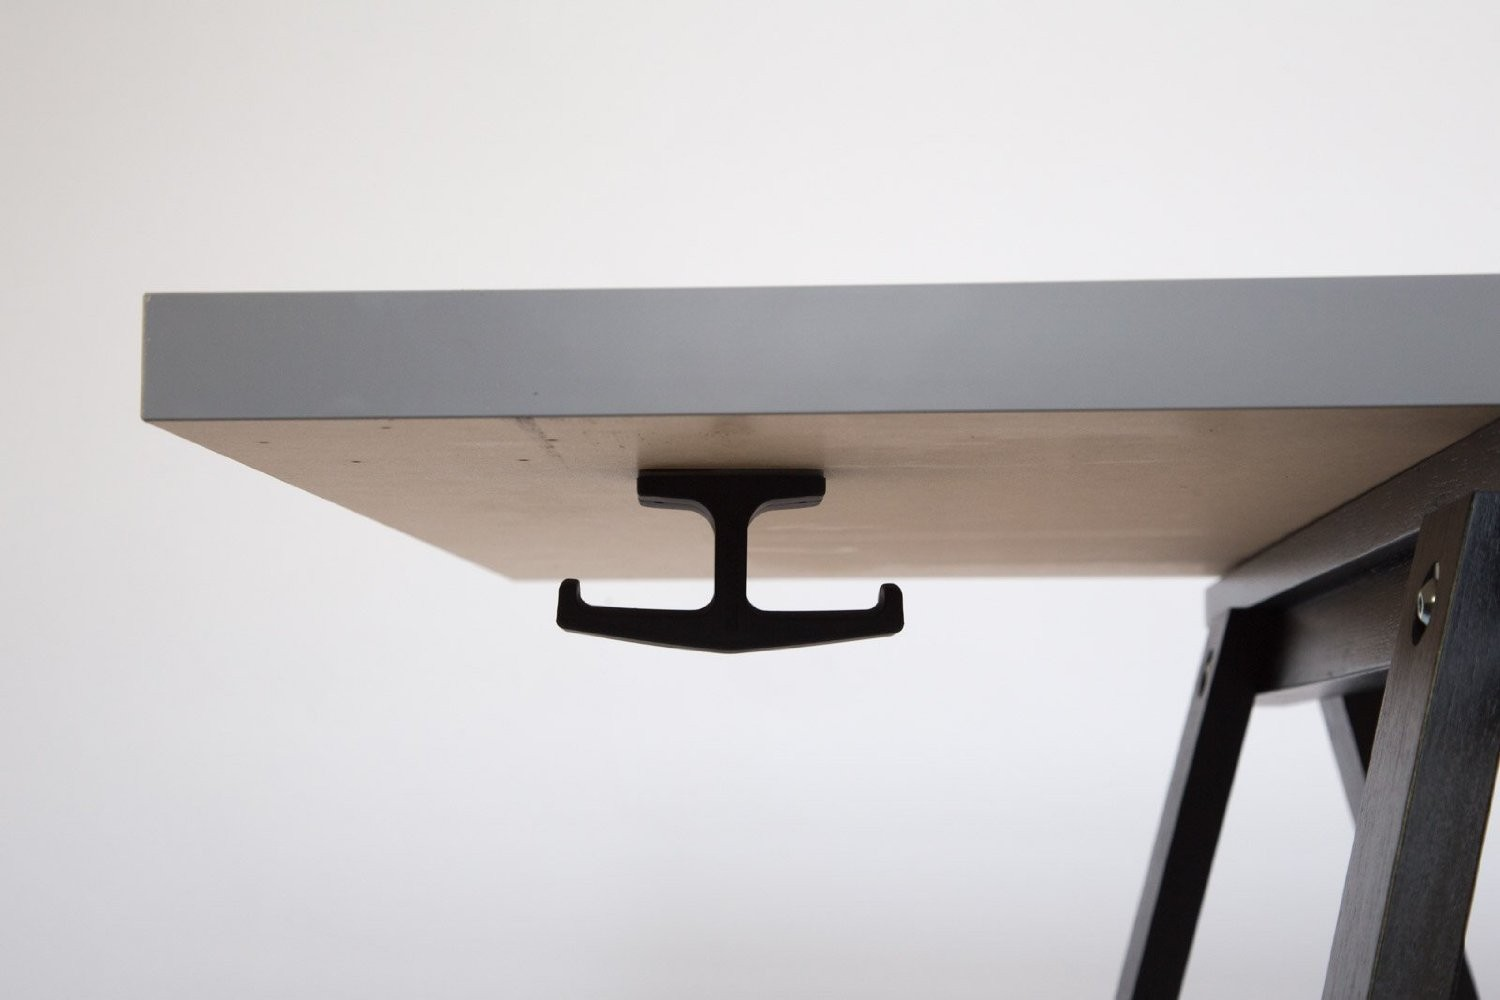 The Anchor - THE ORIGINAL Under-Desk Headphone Stand Mount, B00P31BMHG